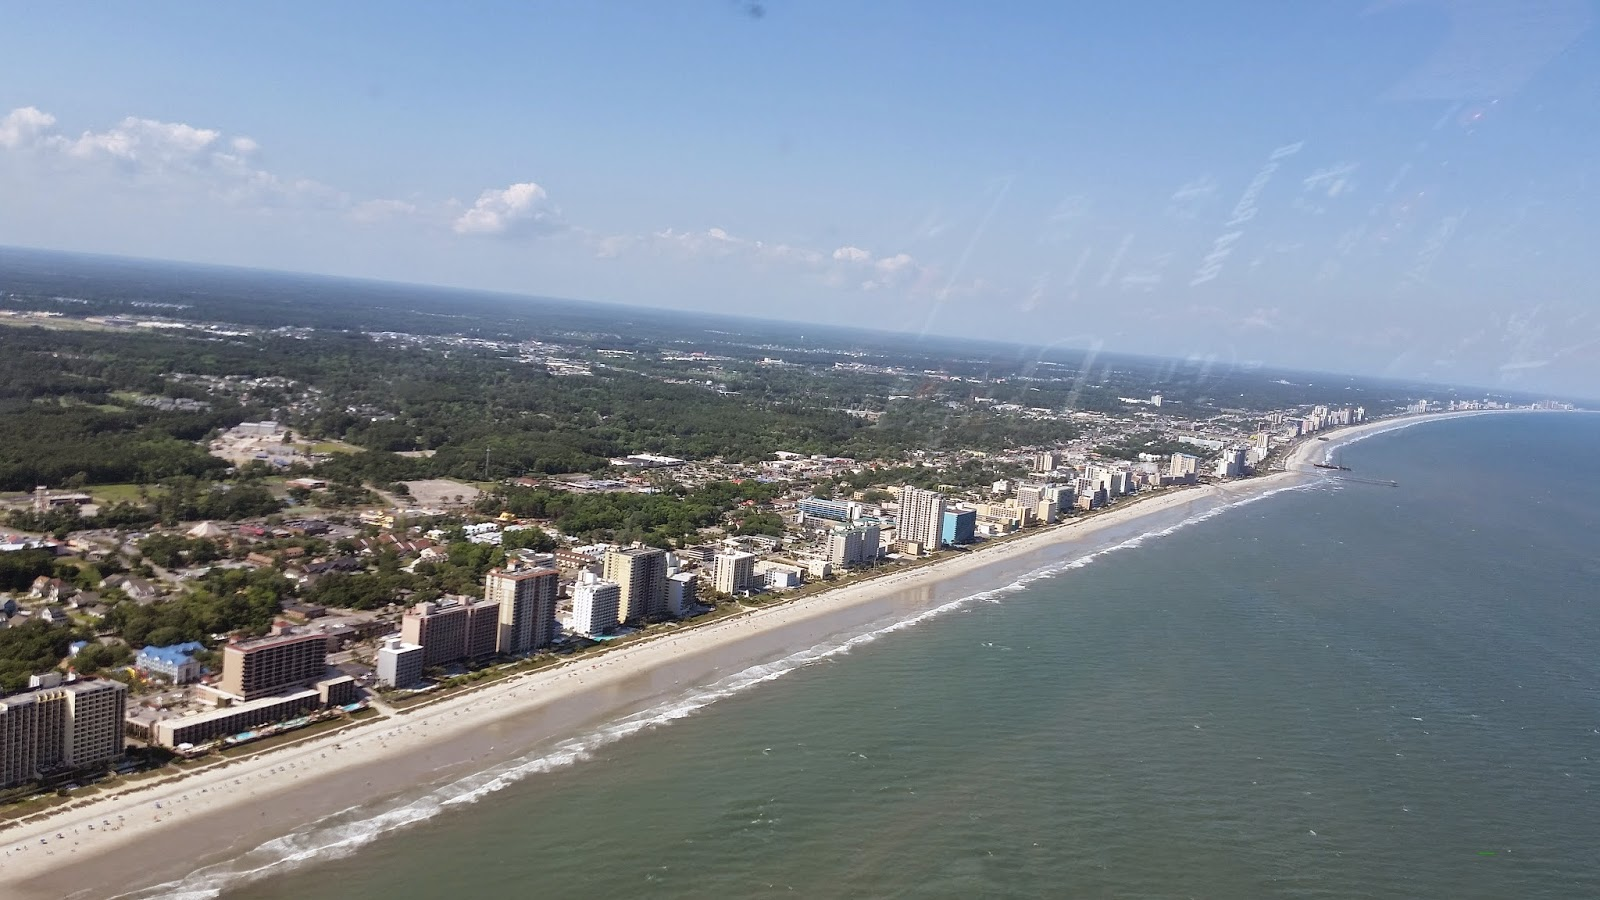 myrtle beach helicopter rides with Myrtle Beach on Watch in addition Feeling Crabby additionally Myrtle Beach as well Trip Planning Grand Canyon additionally Things To Do In North Myrtle Beach.